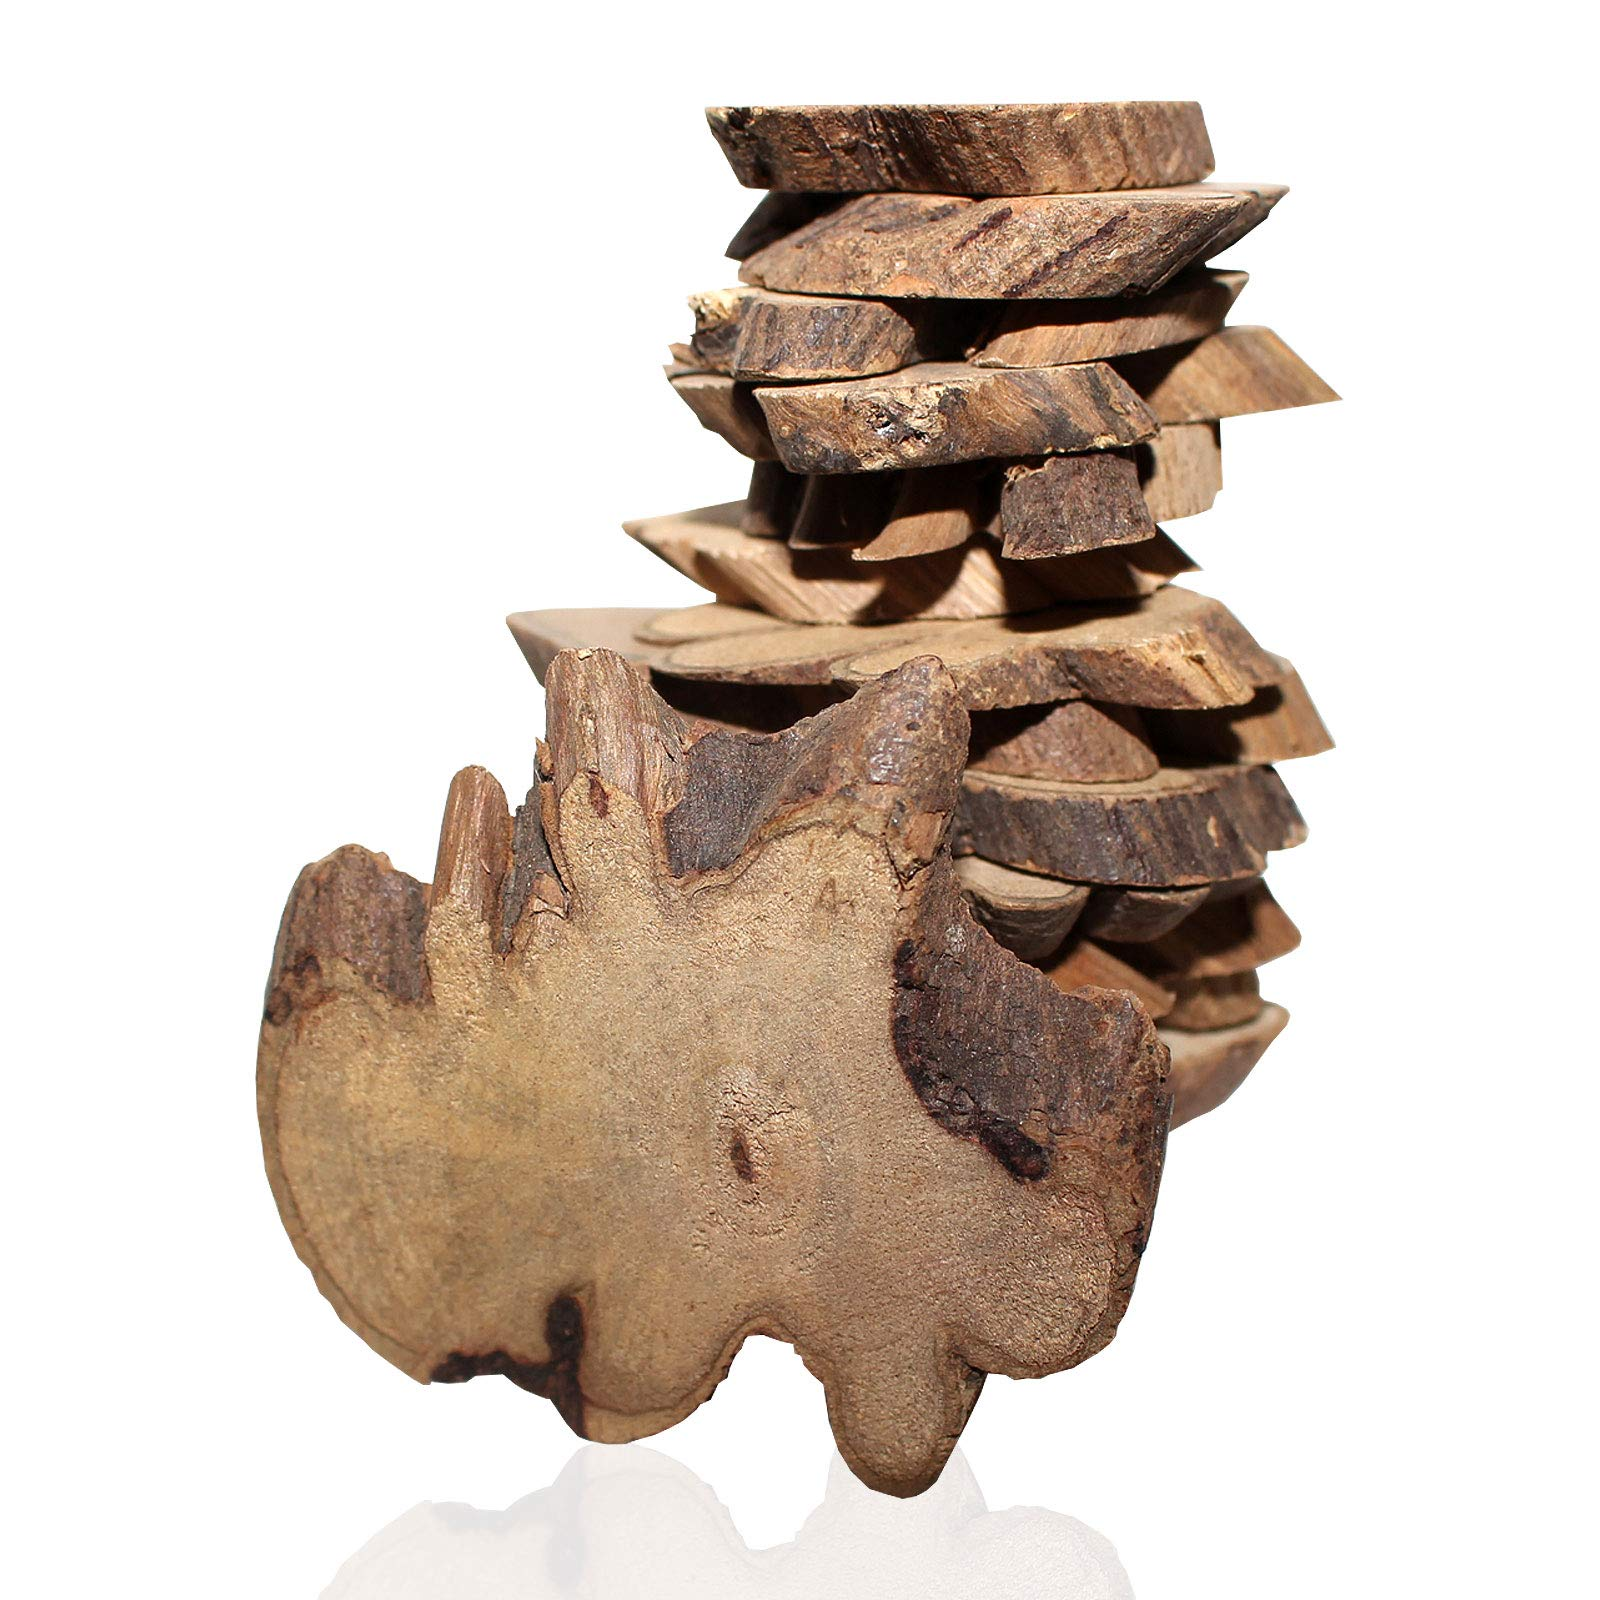 180 pcs Rustic Natural Wooden Slices (500g Pack Approx) - Wood Log Chips with Tree Bark (2 - 5.5cm ) - 5 mm Thickness Slices for Wooden Craft Embellishments and Wedding Centerpieces Decoration